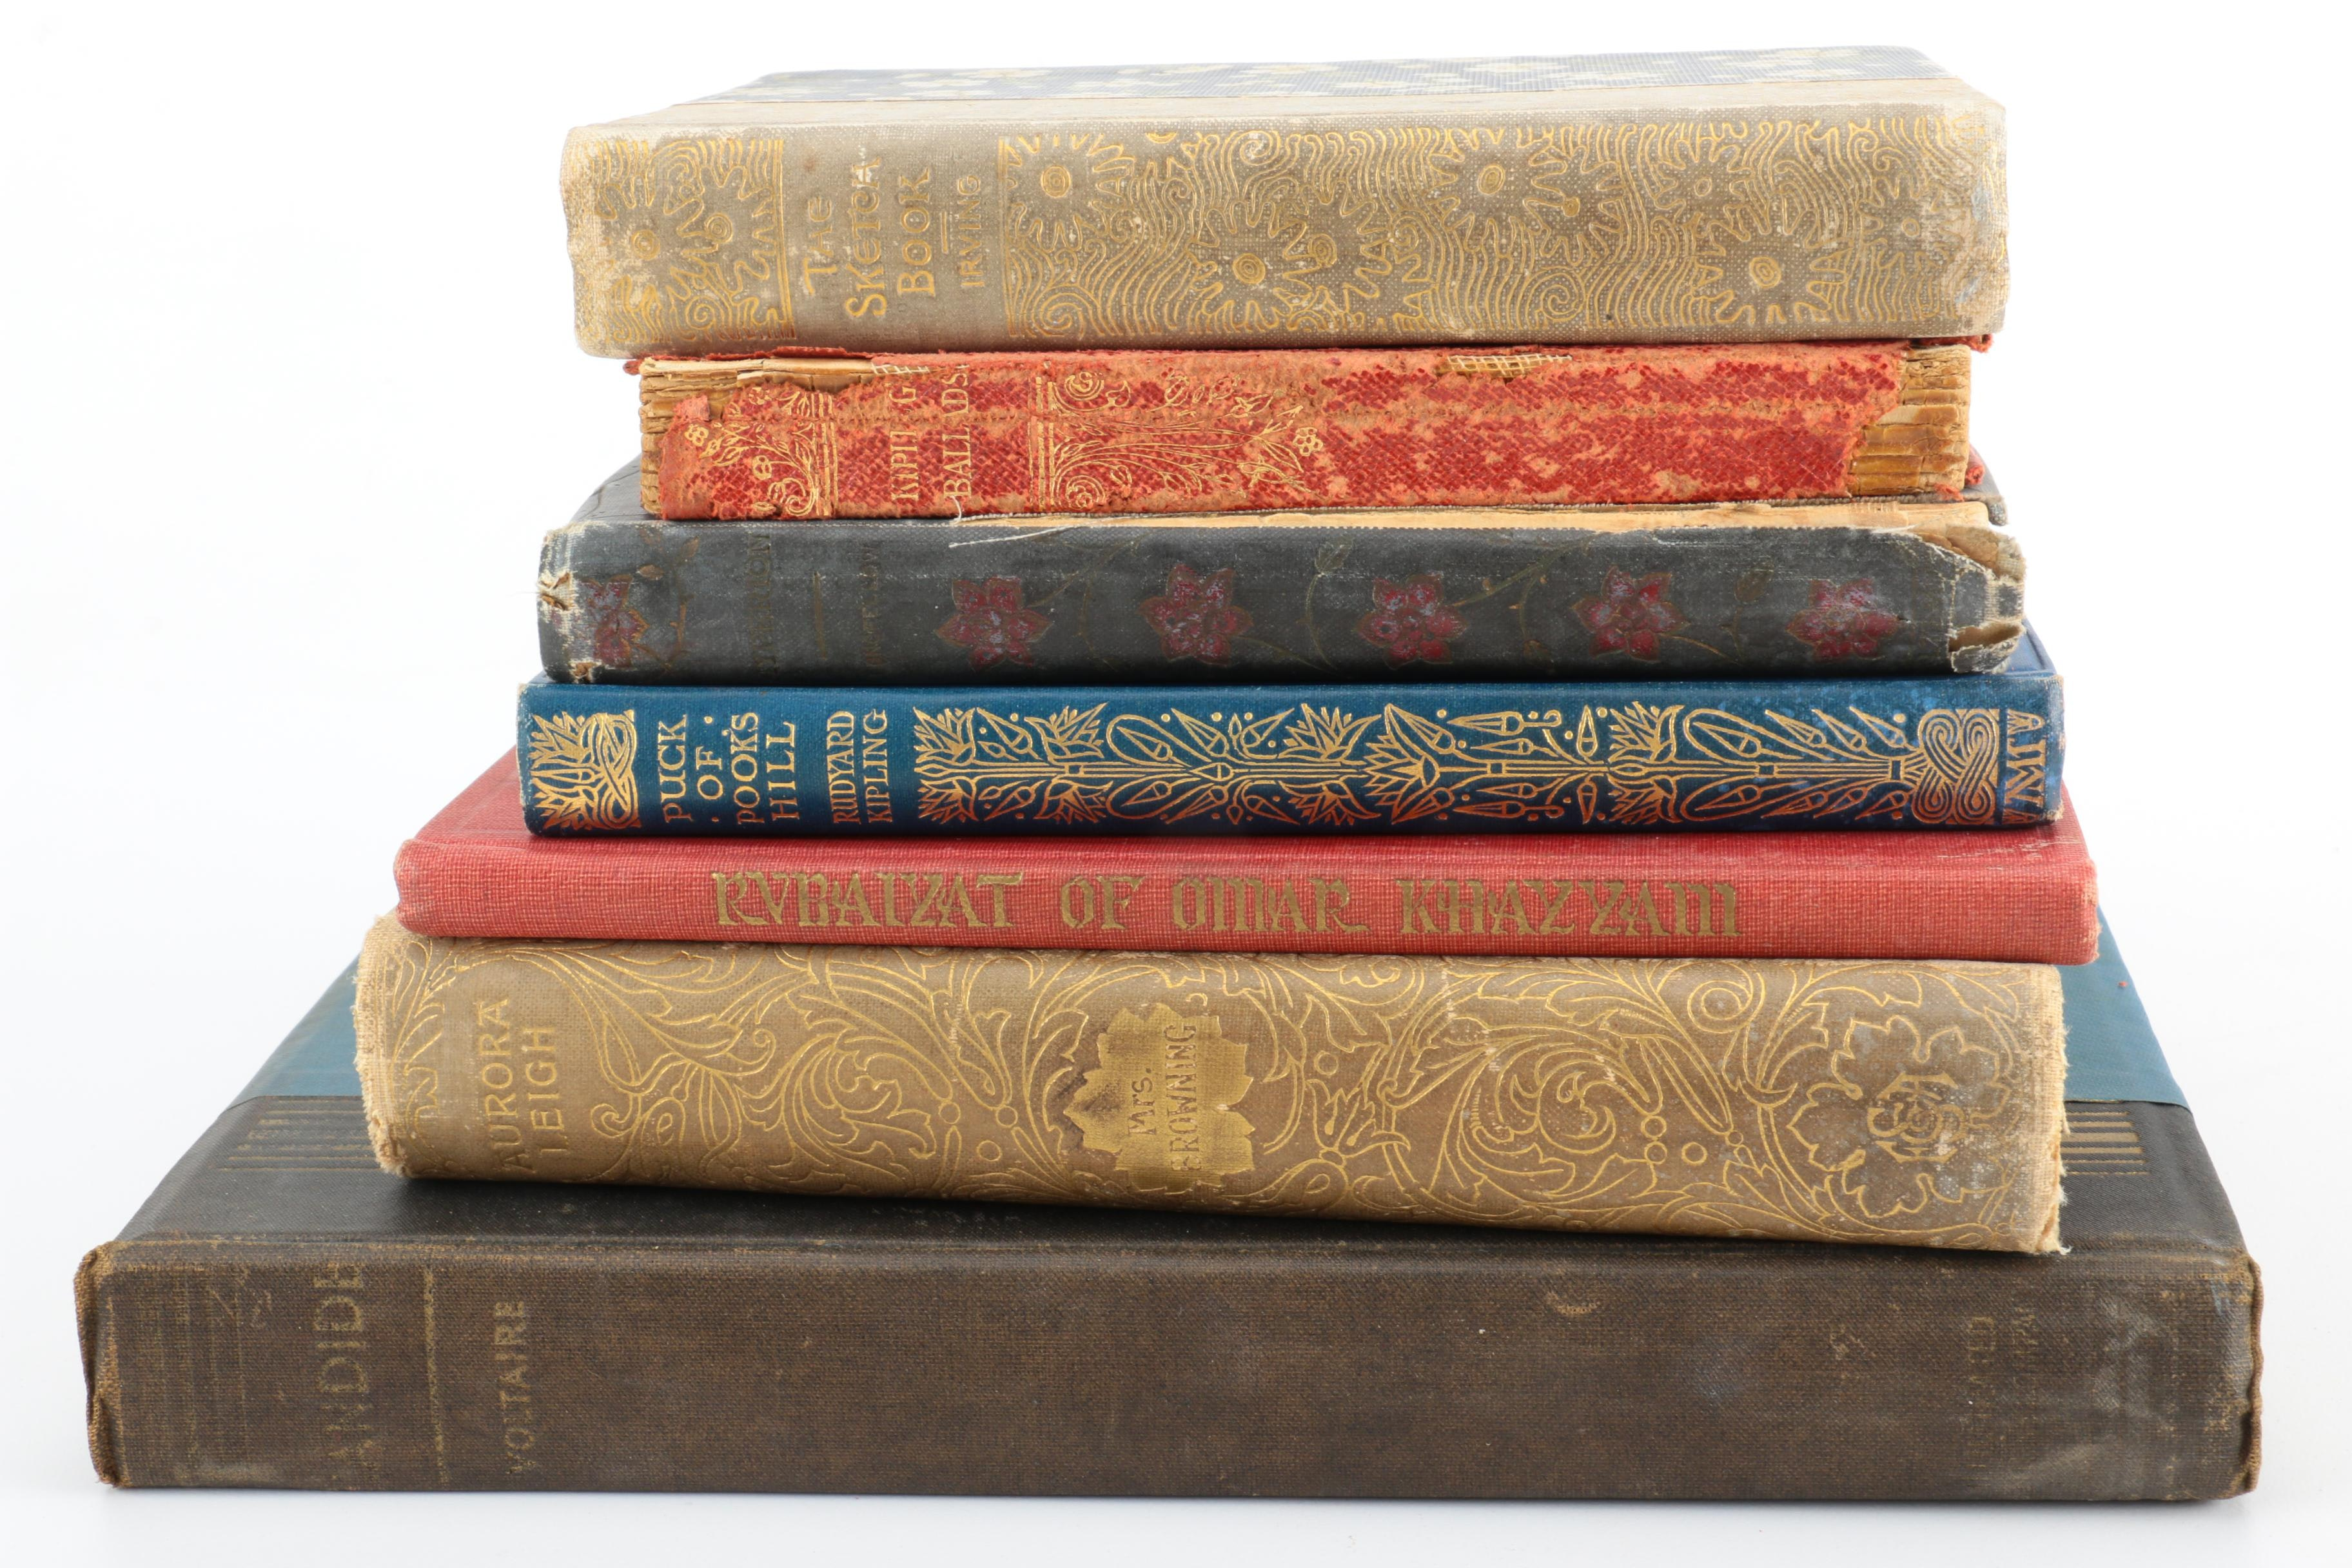 Collection of Poetry and Fiction Books Featuring Rudyard Kipling